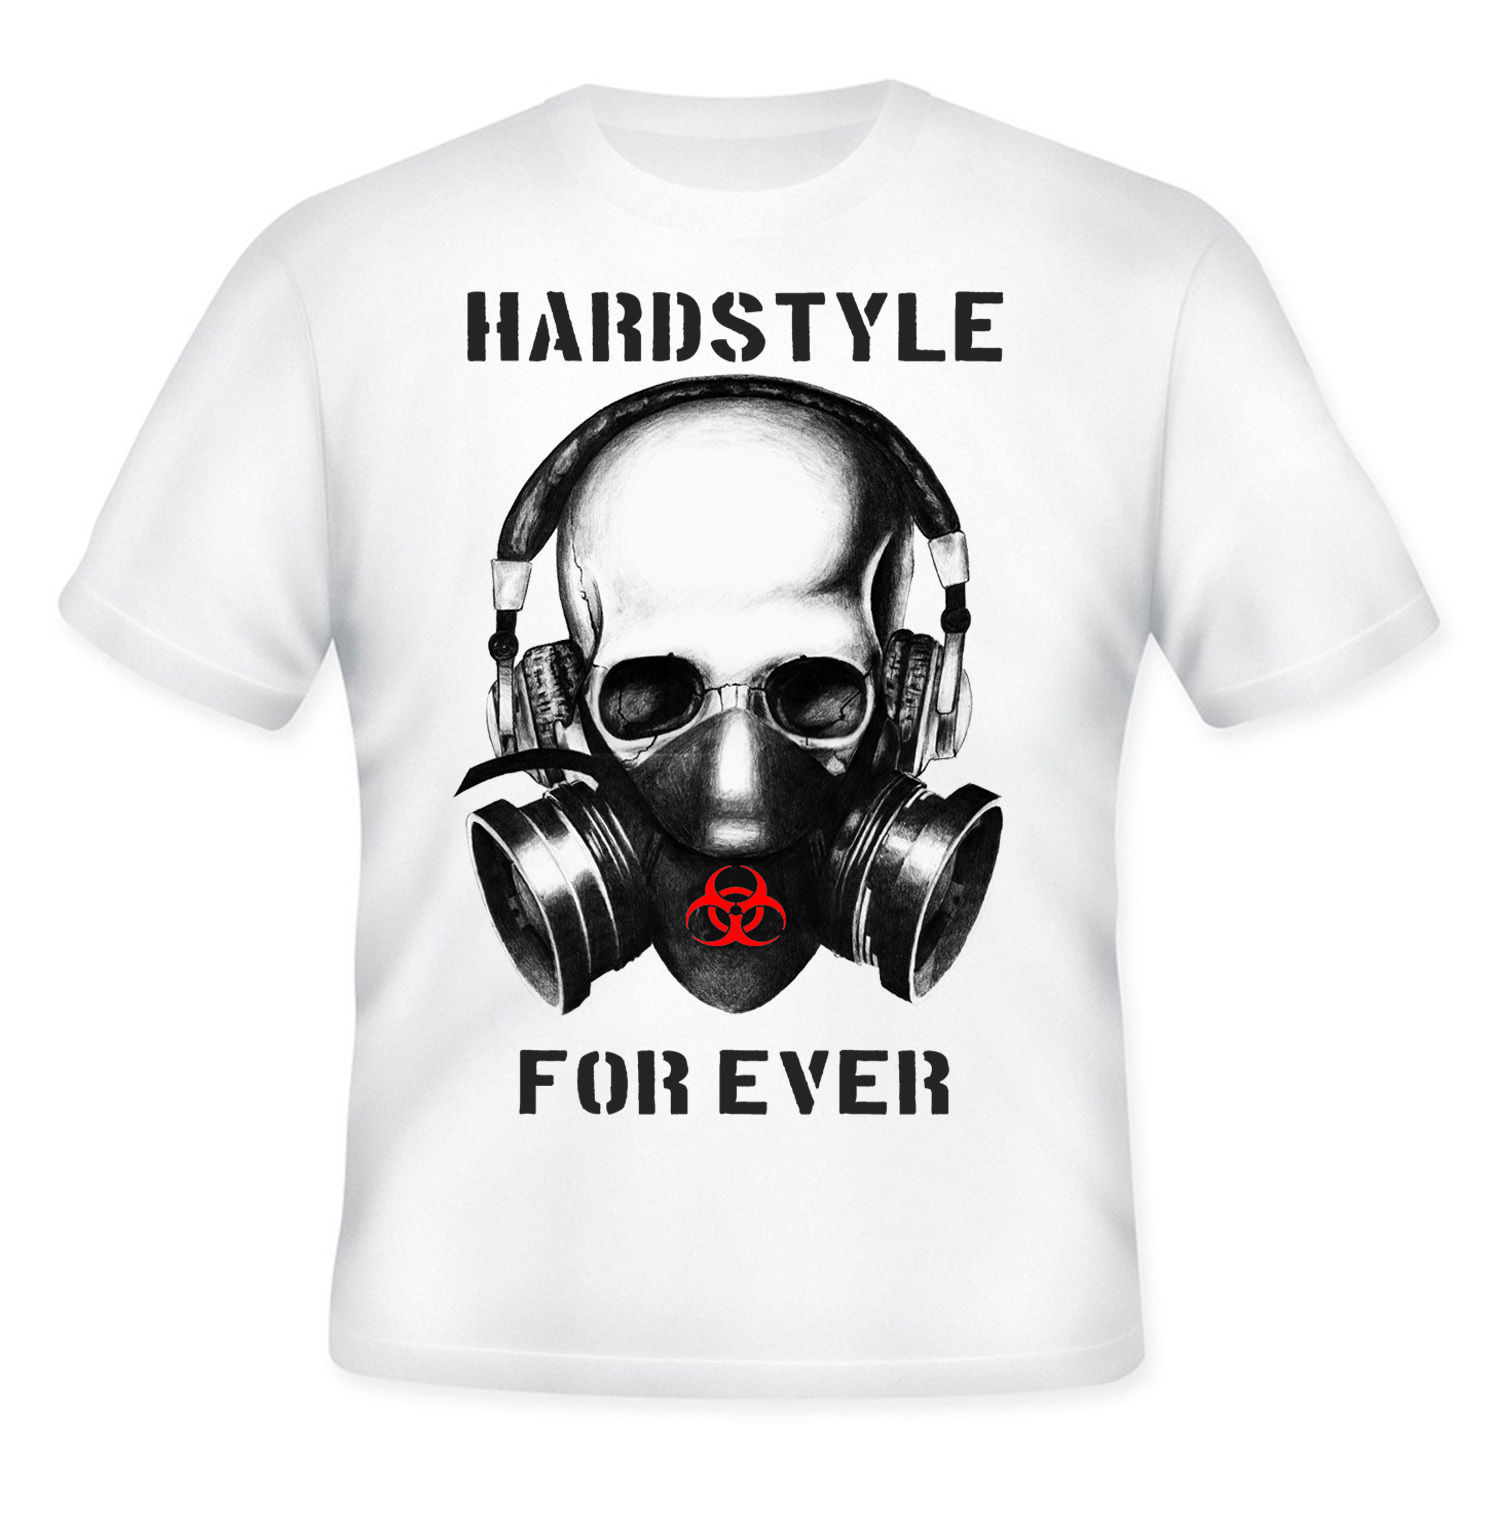 Primary image for HARDSTYLE FOR EVER - NEW AMAZING GRAPHIC QUOTE T-SHIRT - S-M-L-XL-XXL